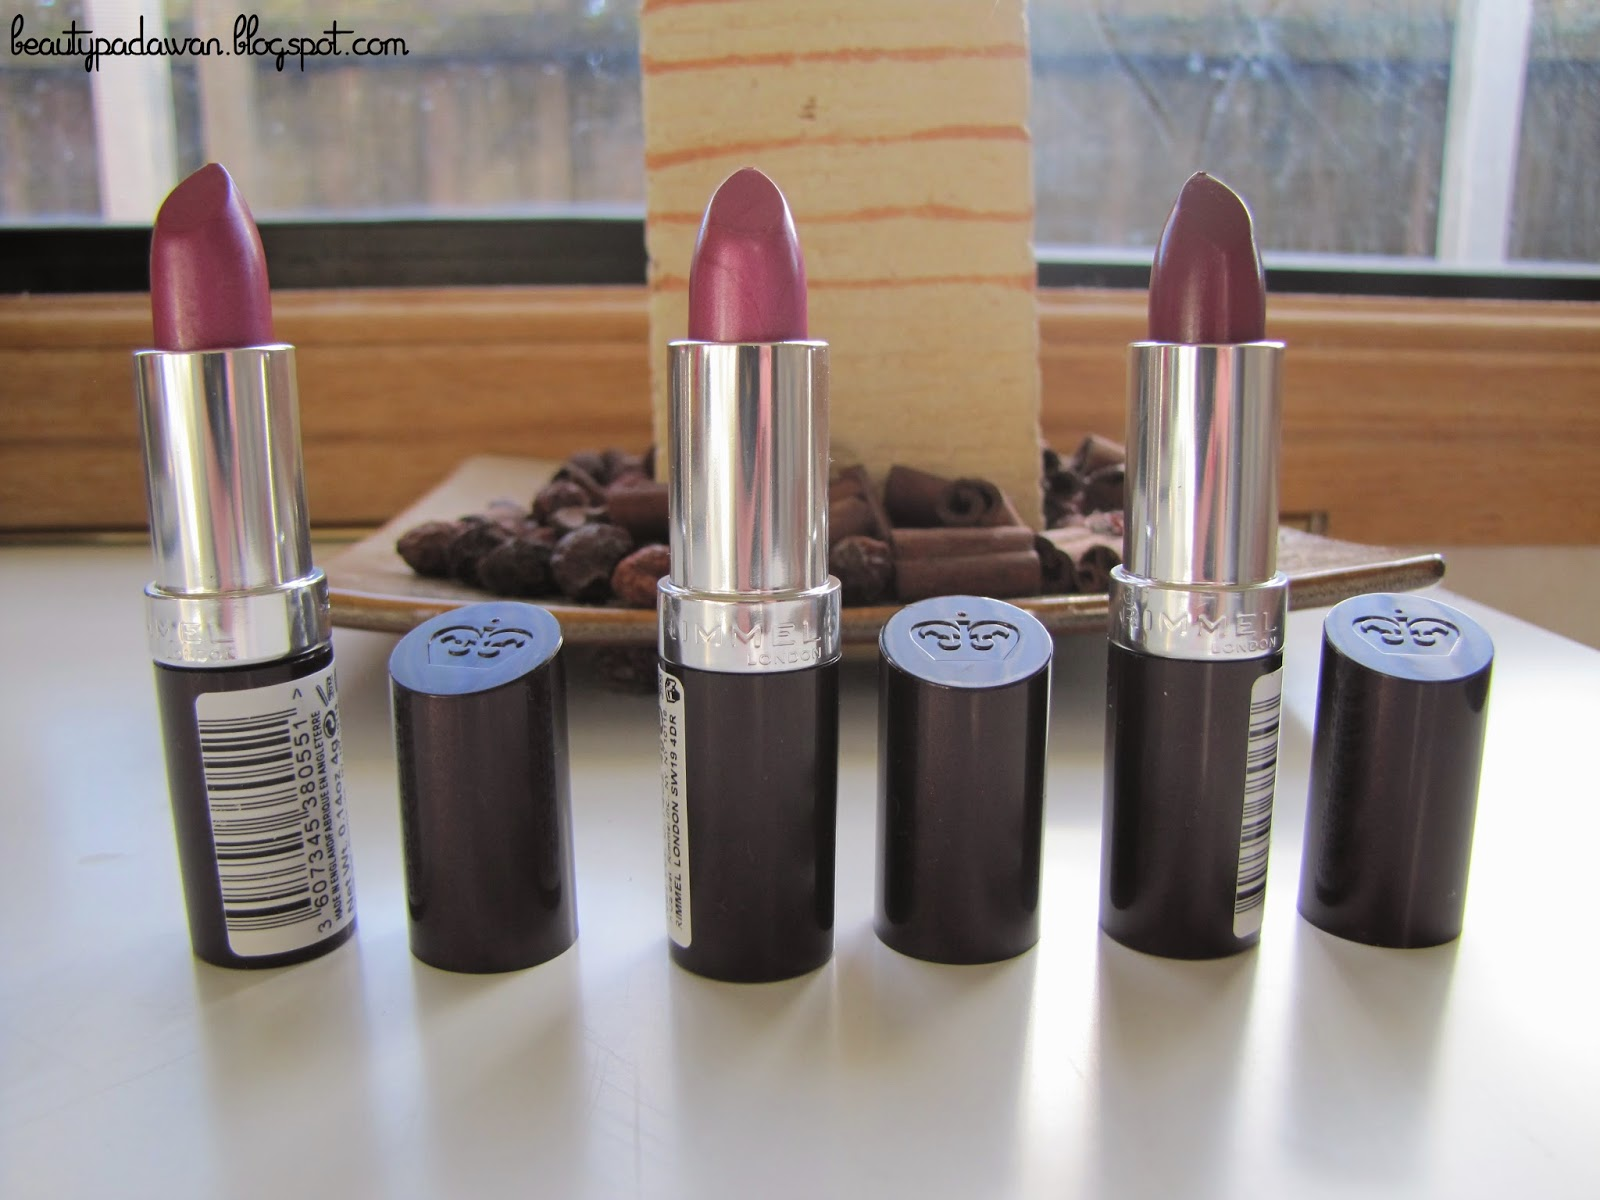 Rimmel Lasting Finish lipsticks, l to r: Amethyst Shimmer, Sugar Plum, Starry-Eyed